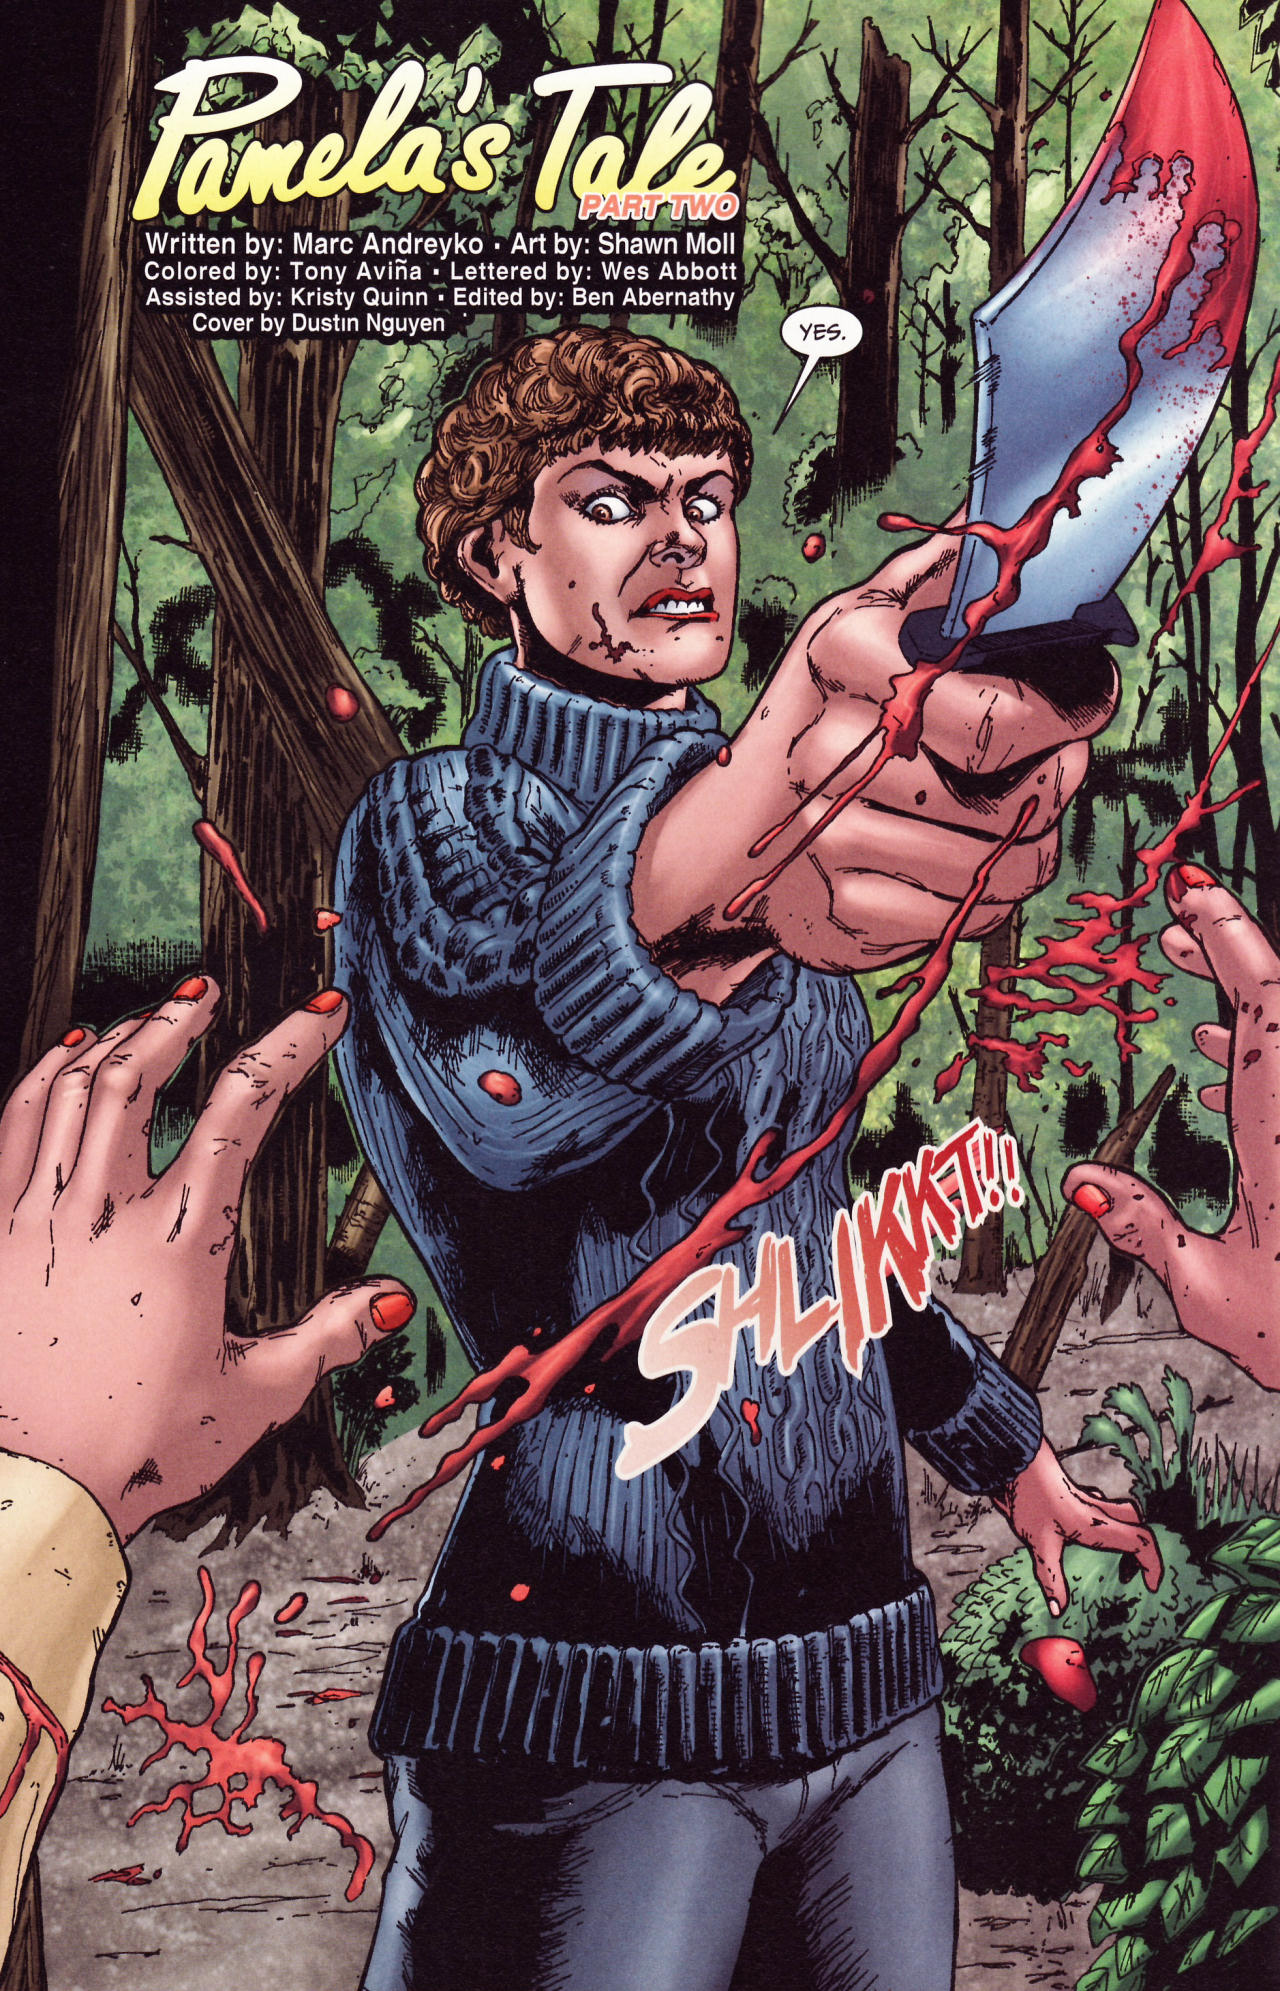 Read online Friday the 13th: Pamela's Tale comic -  Issue #2 - 6